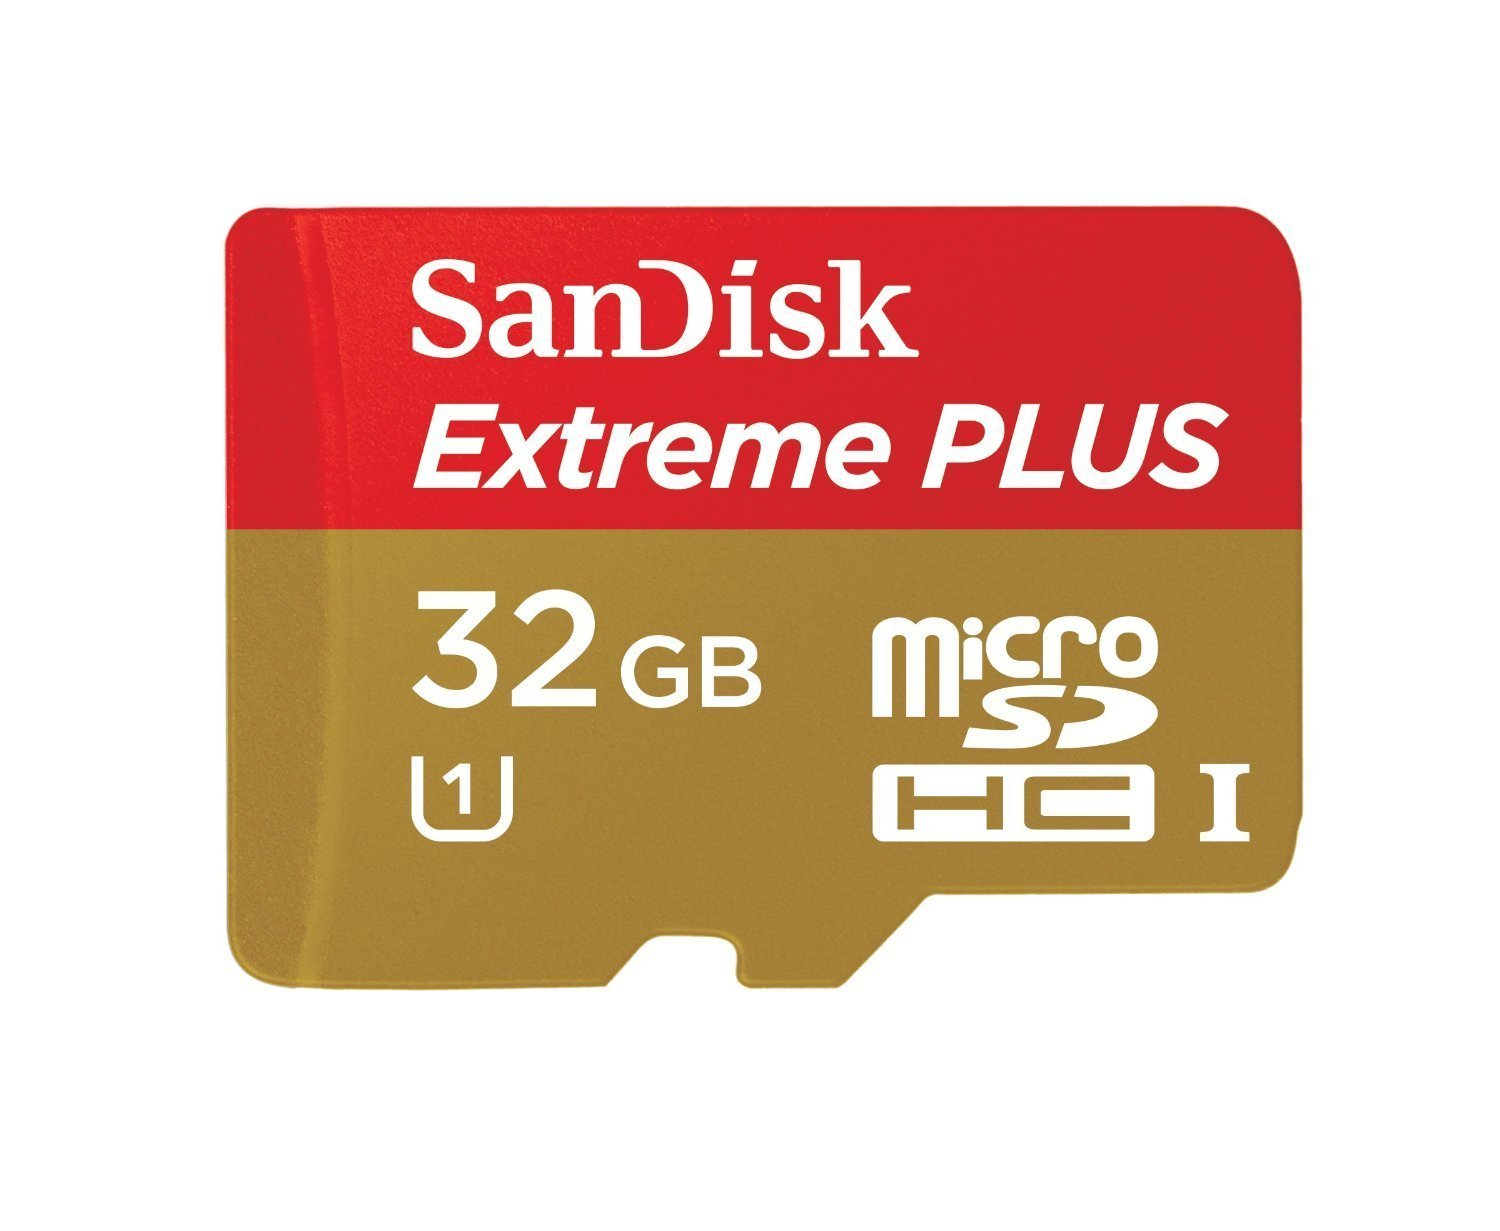 SanDisk EXTREME PLUS 32GB (80MB/S) Huawei SnapTo MicroSDHC Card is Custom formatted for high speed f